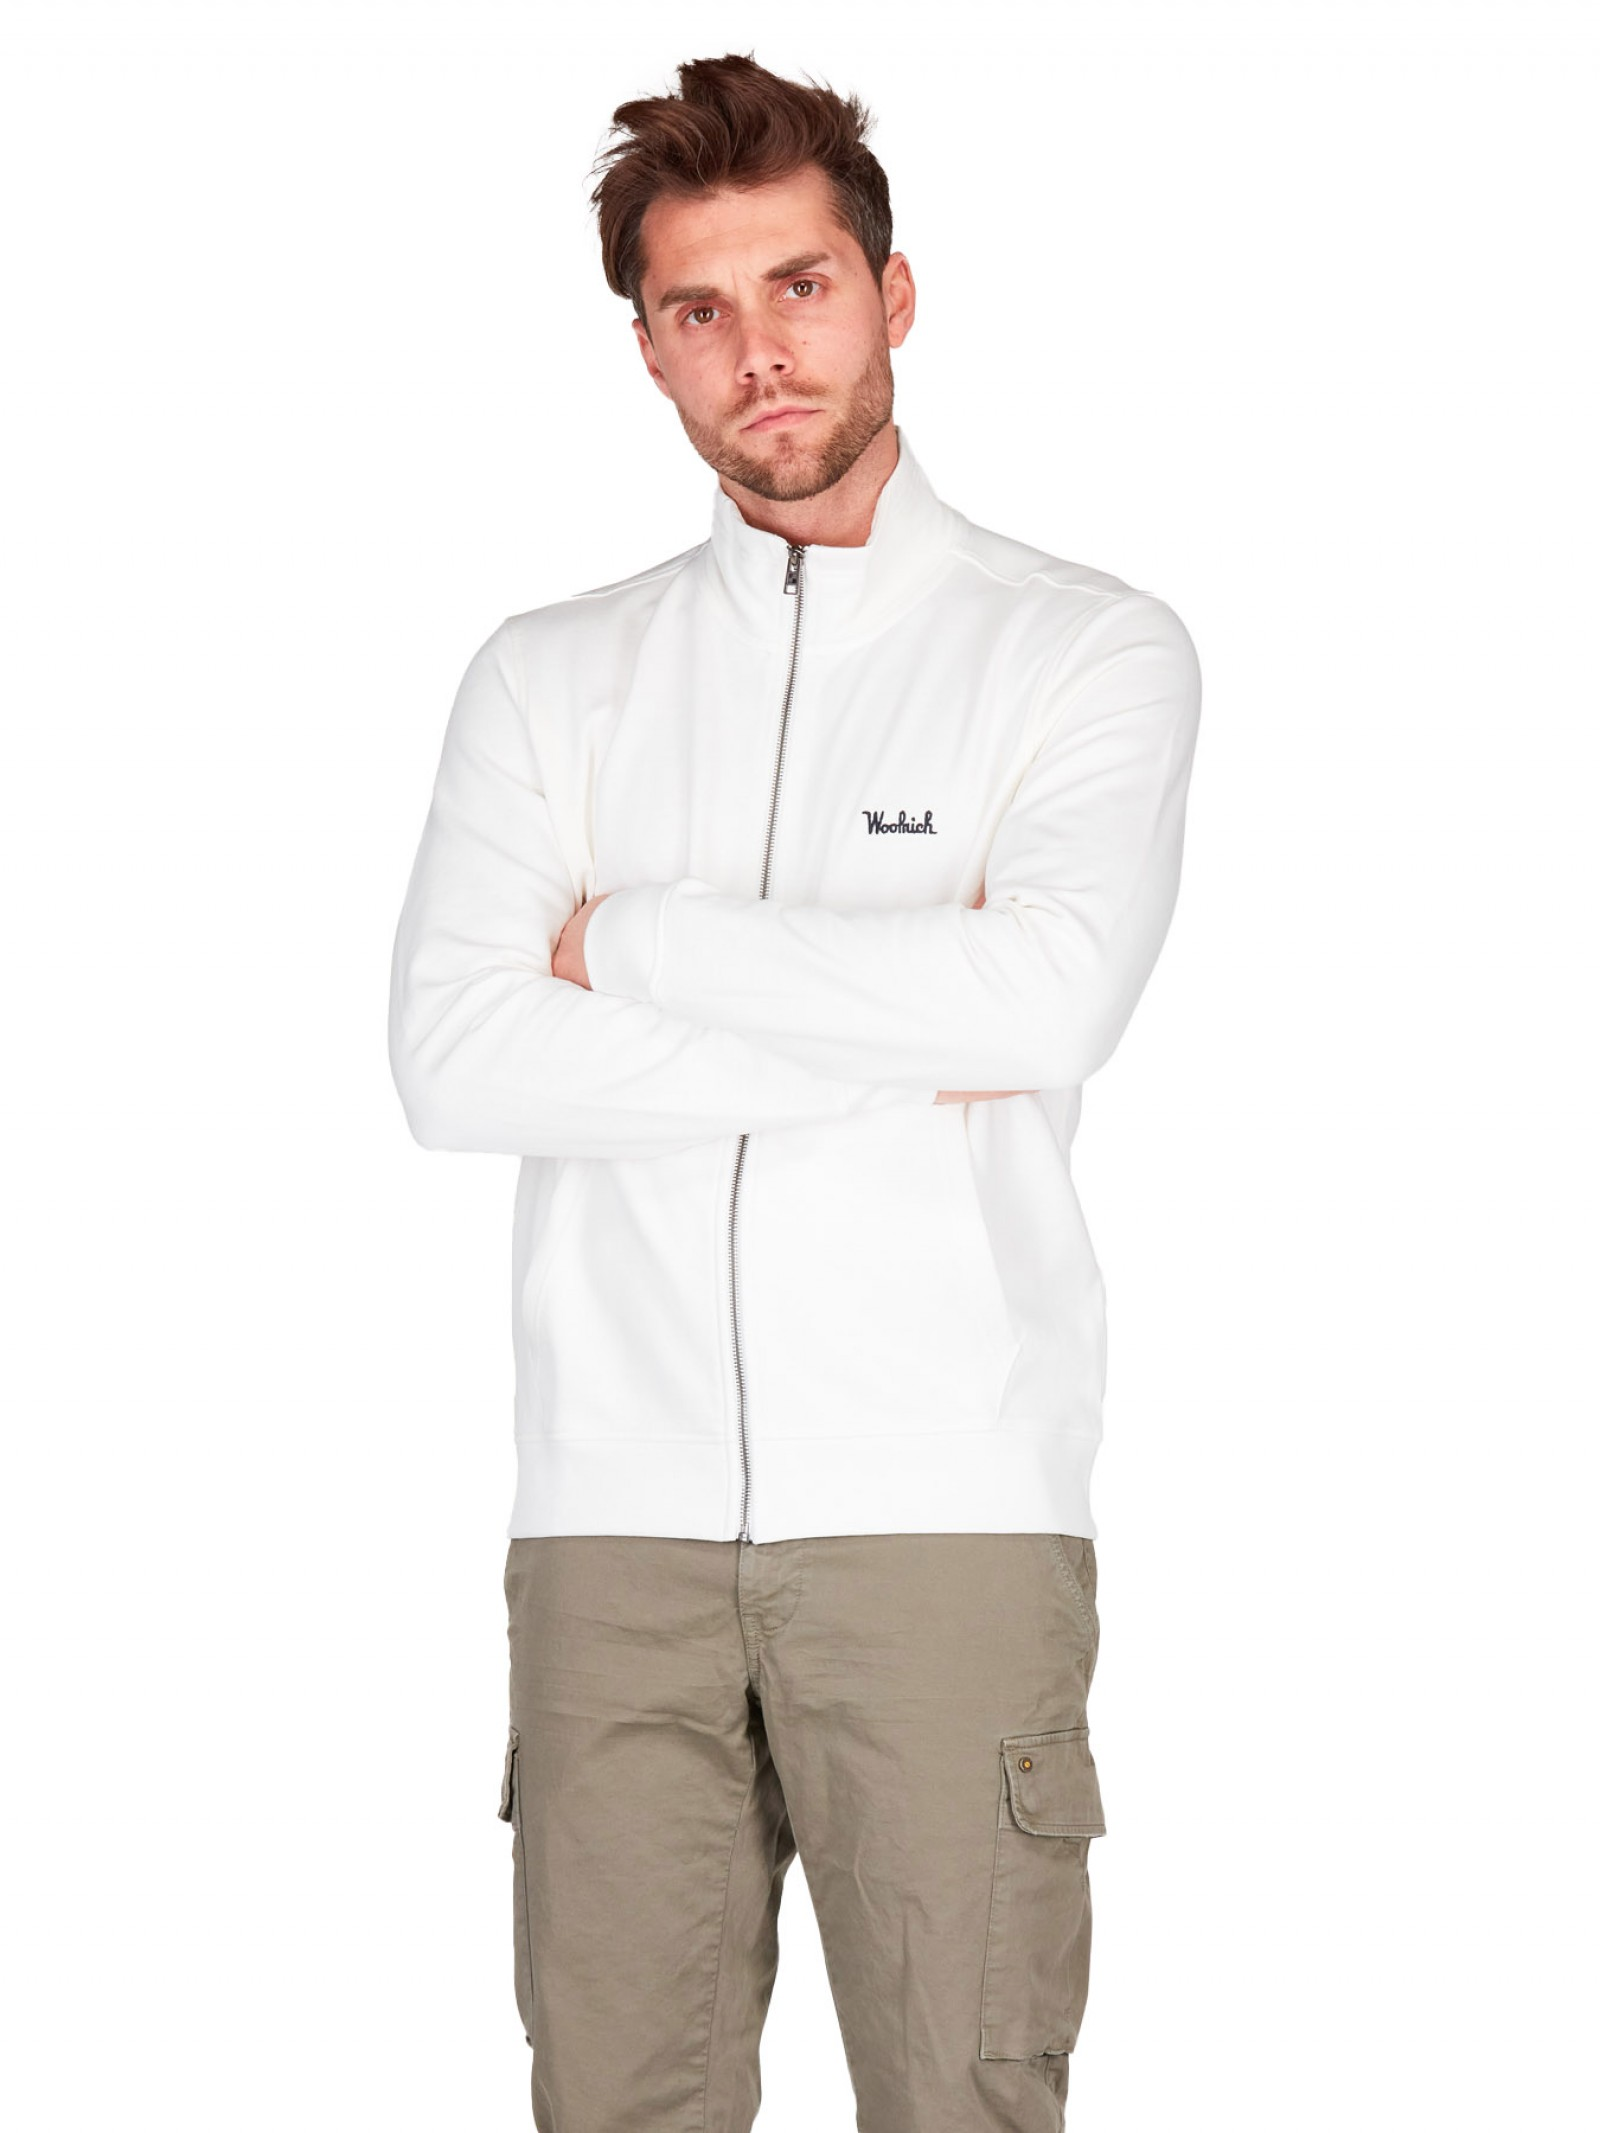 Woolrich - Track Essential,full zip - E9021 - WOSW0092-UT2544-8041